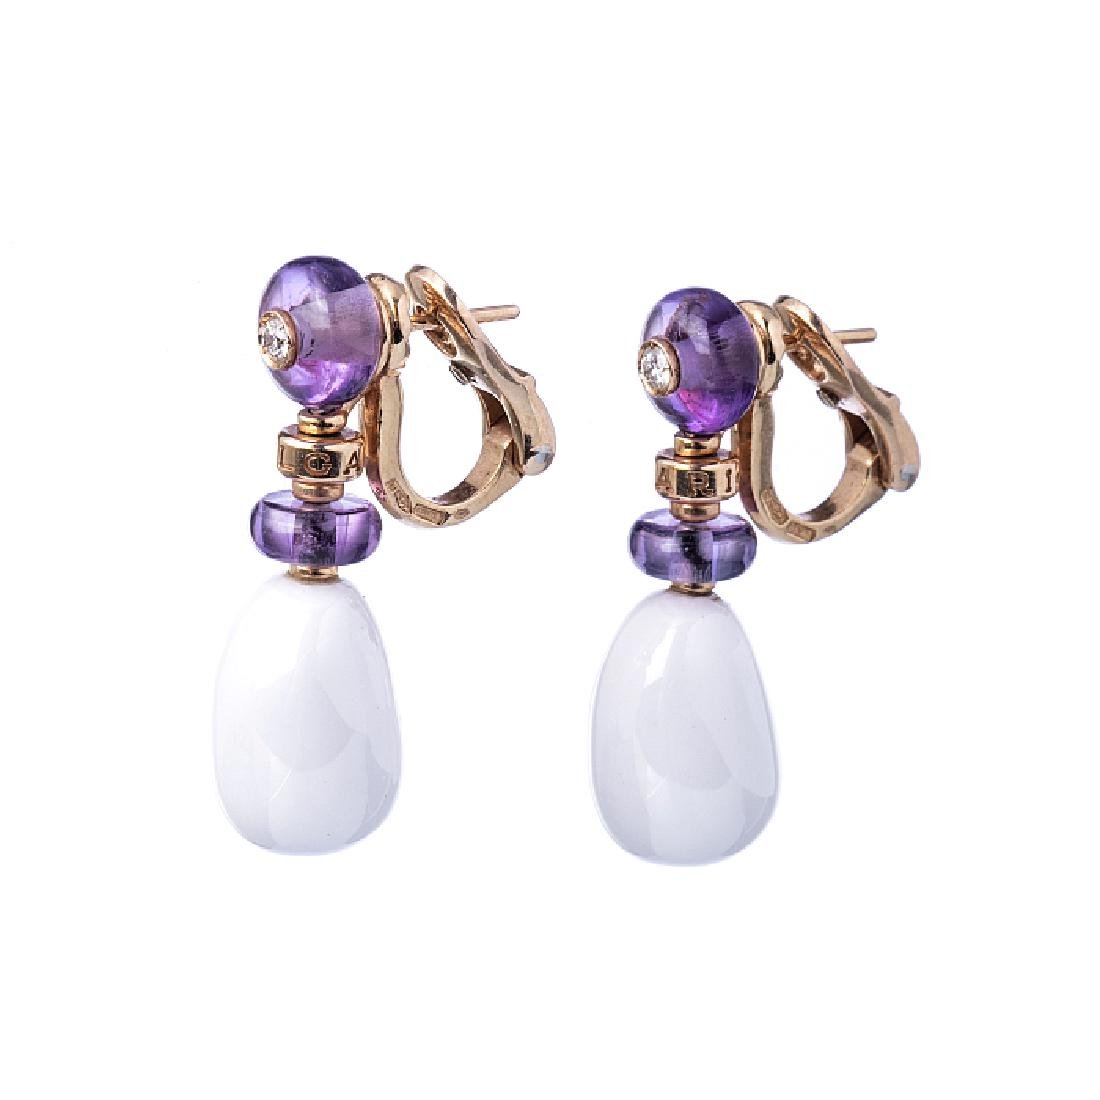 BULGARI earrings in gold with amethysts, diamonds, and